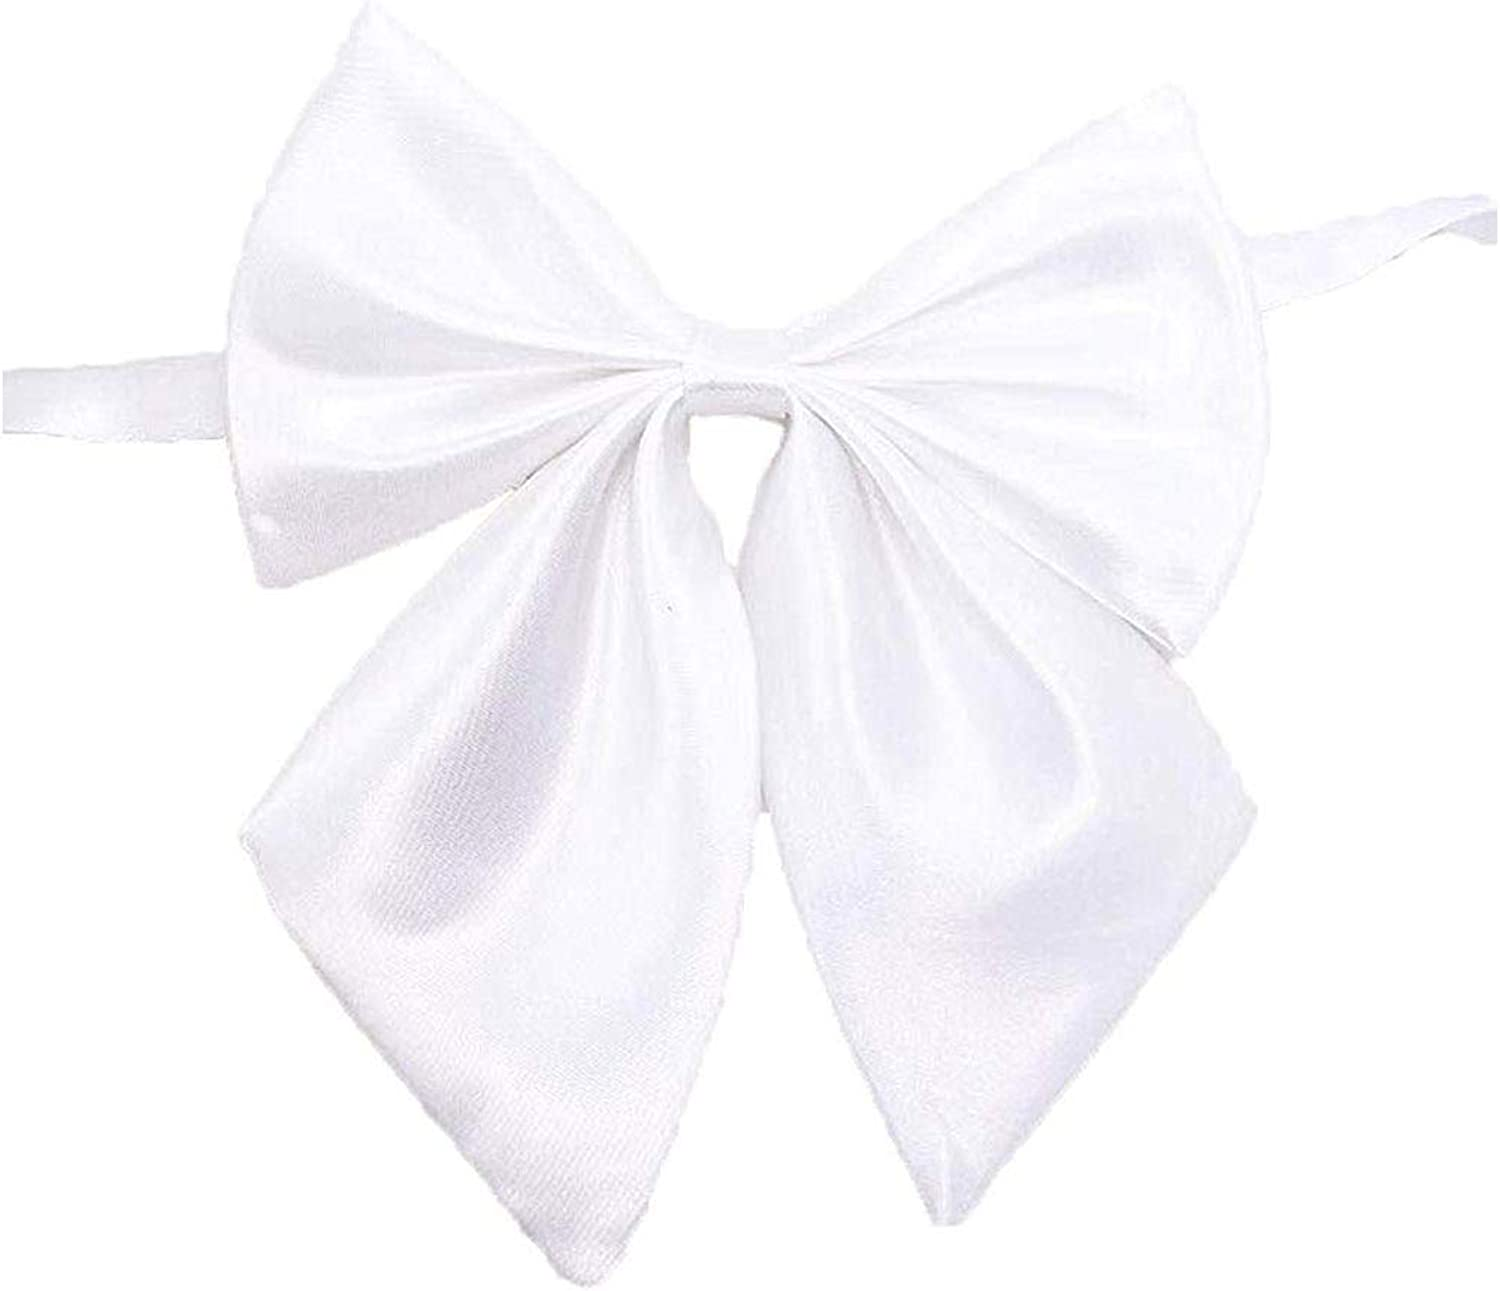 Ribbon Bow Tie Bowknot Pre-Tied Cravat with Adjustable Lenght Neck Tie